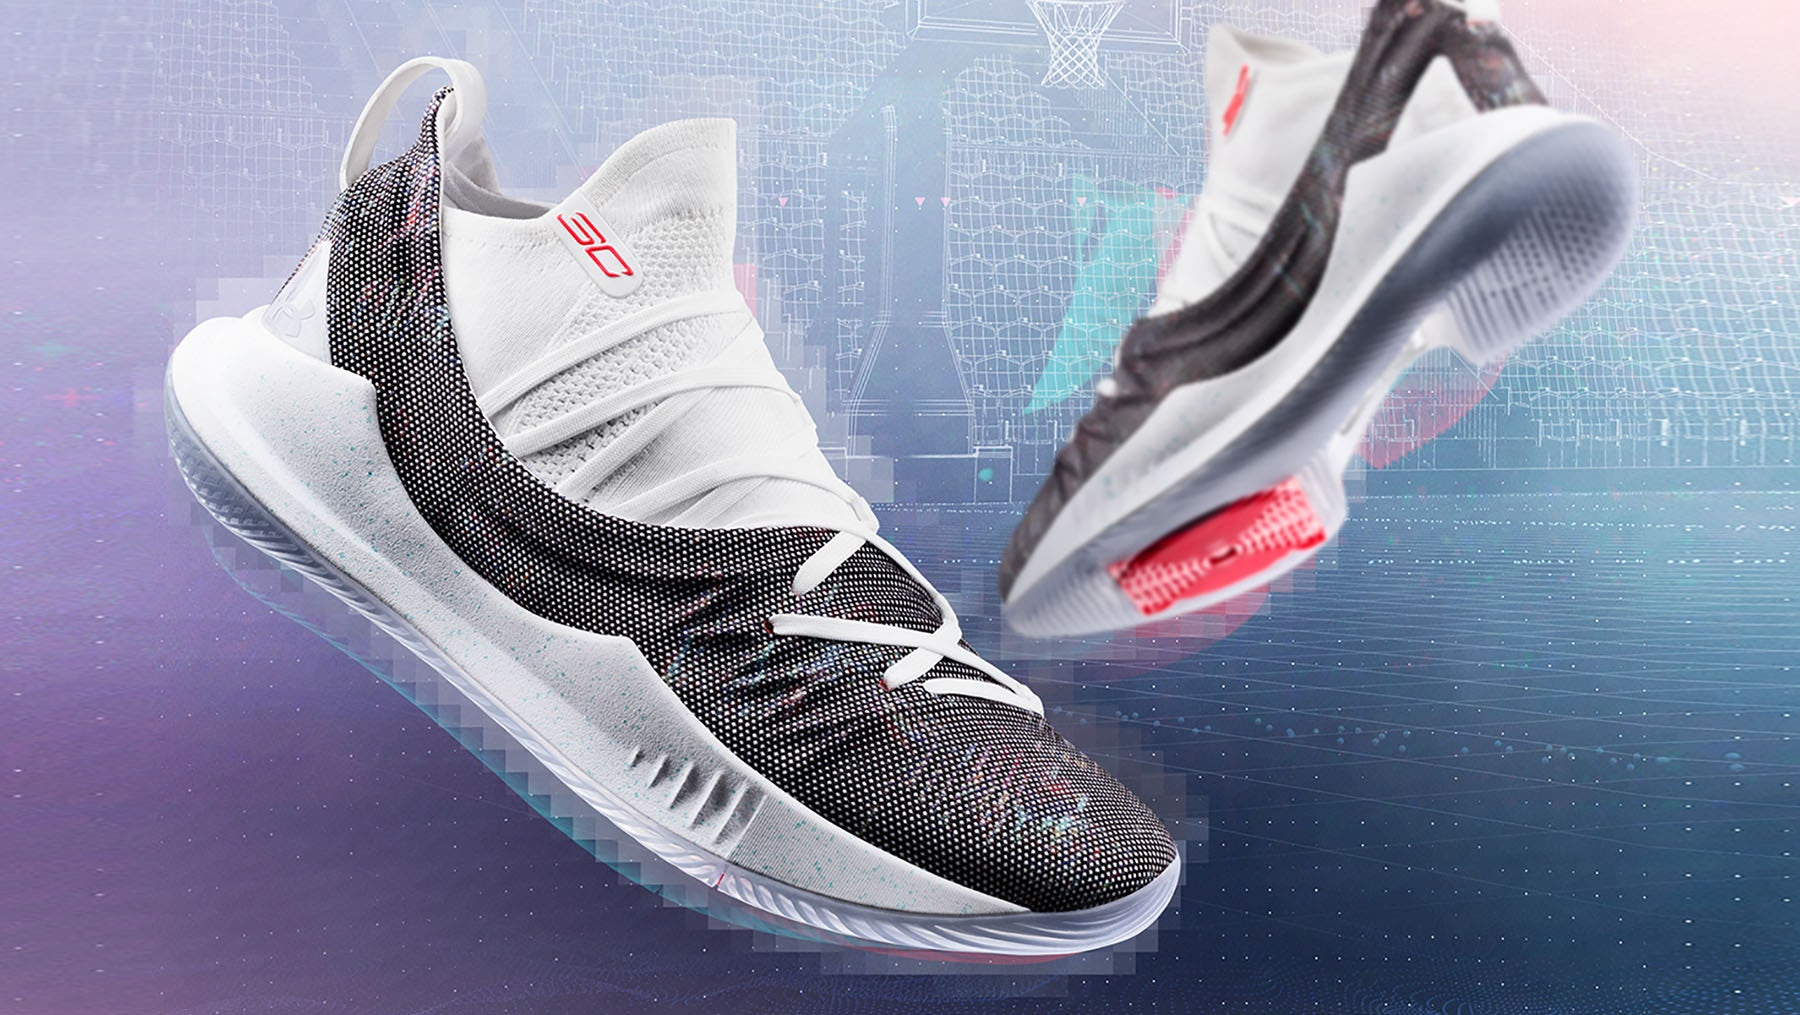 Under Armour's Curry 5 shoe | Source: Courtesy